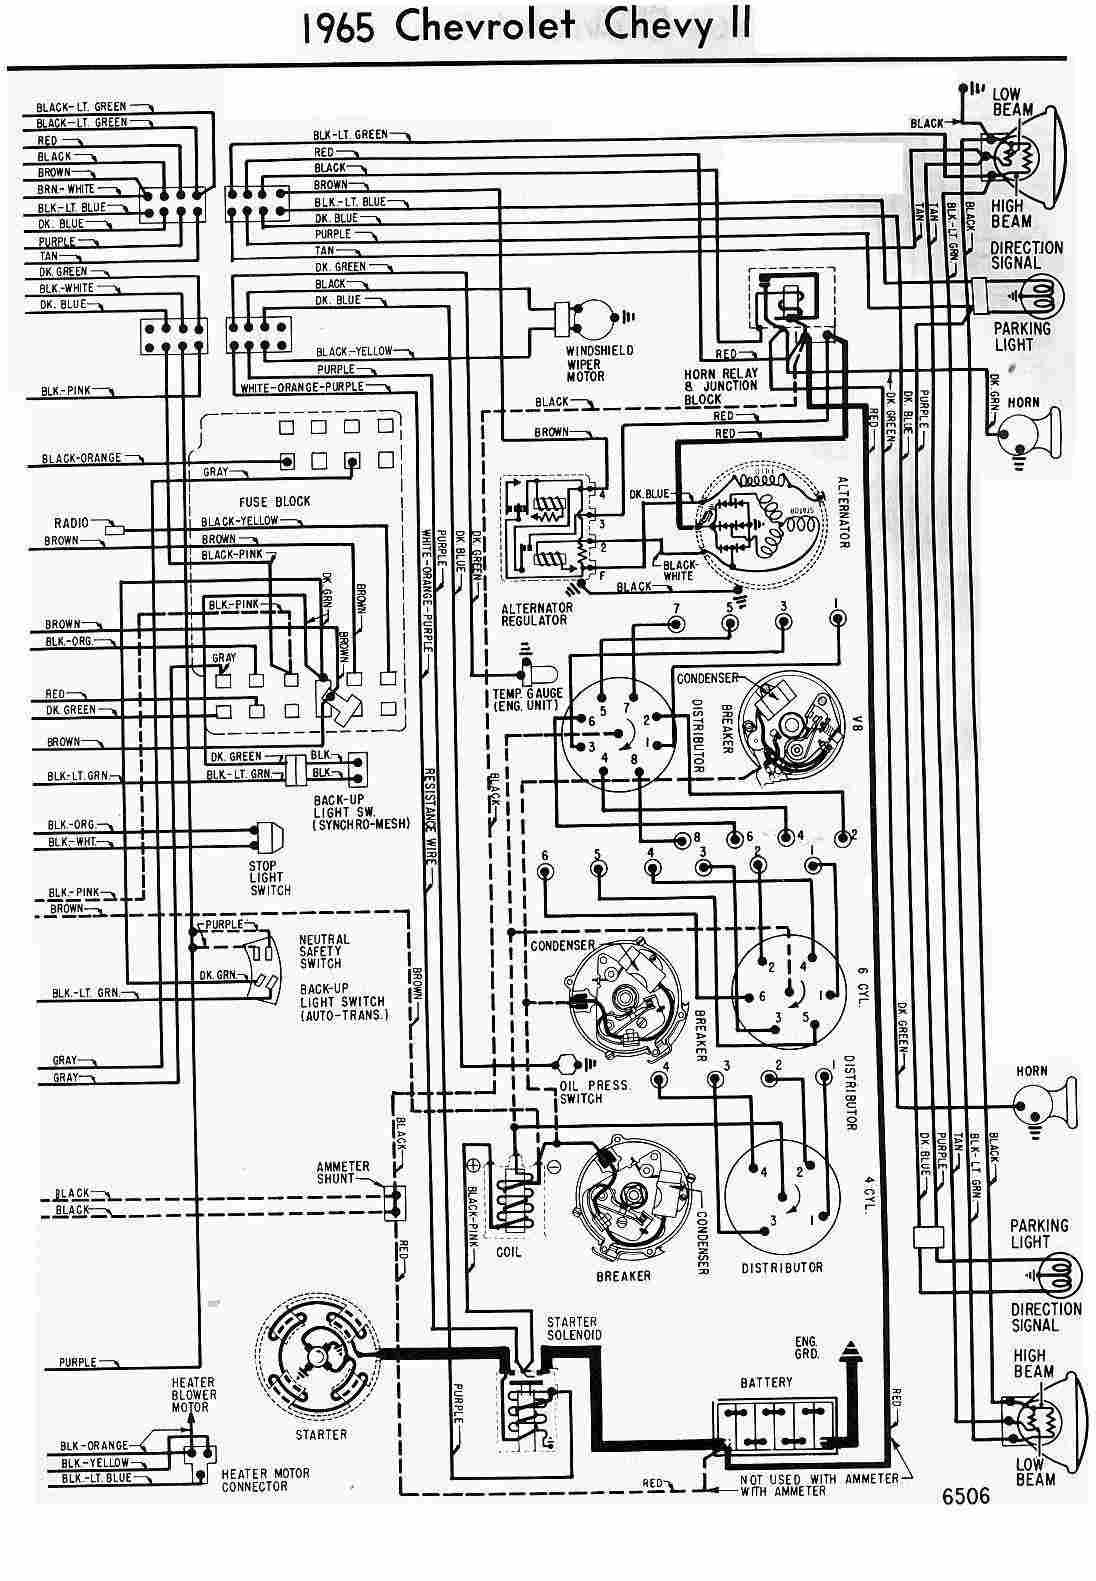 chevrolet car manuals wiring diagrams pdf fault codes rh automotive manuals net chevrolet wiring diagrams free download gm wiring diagrams